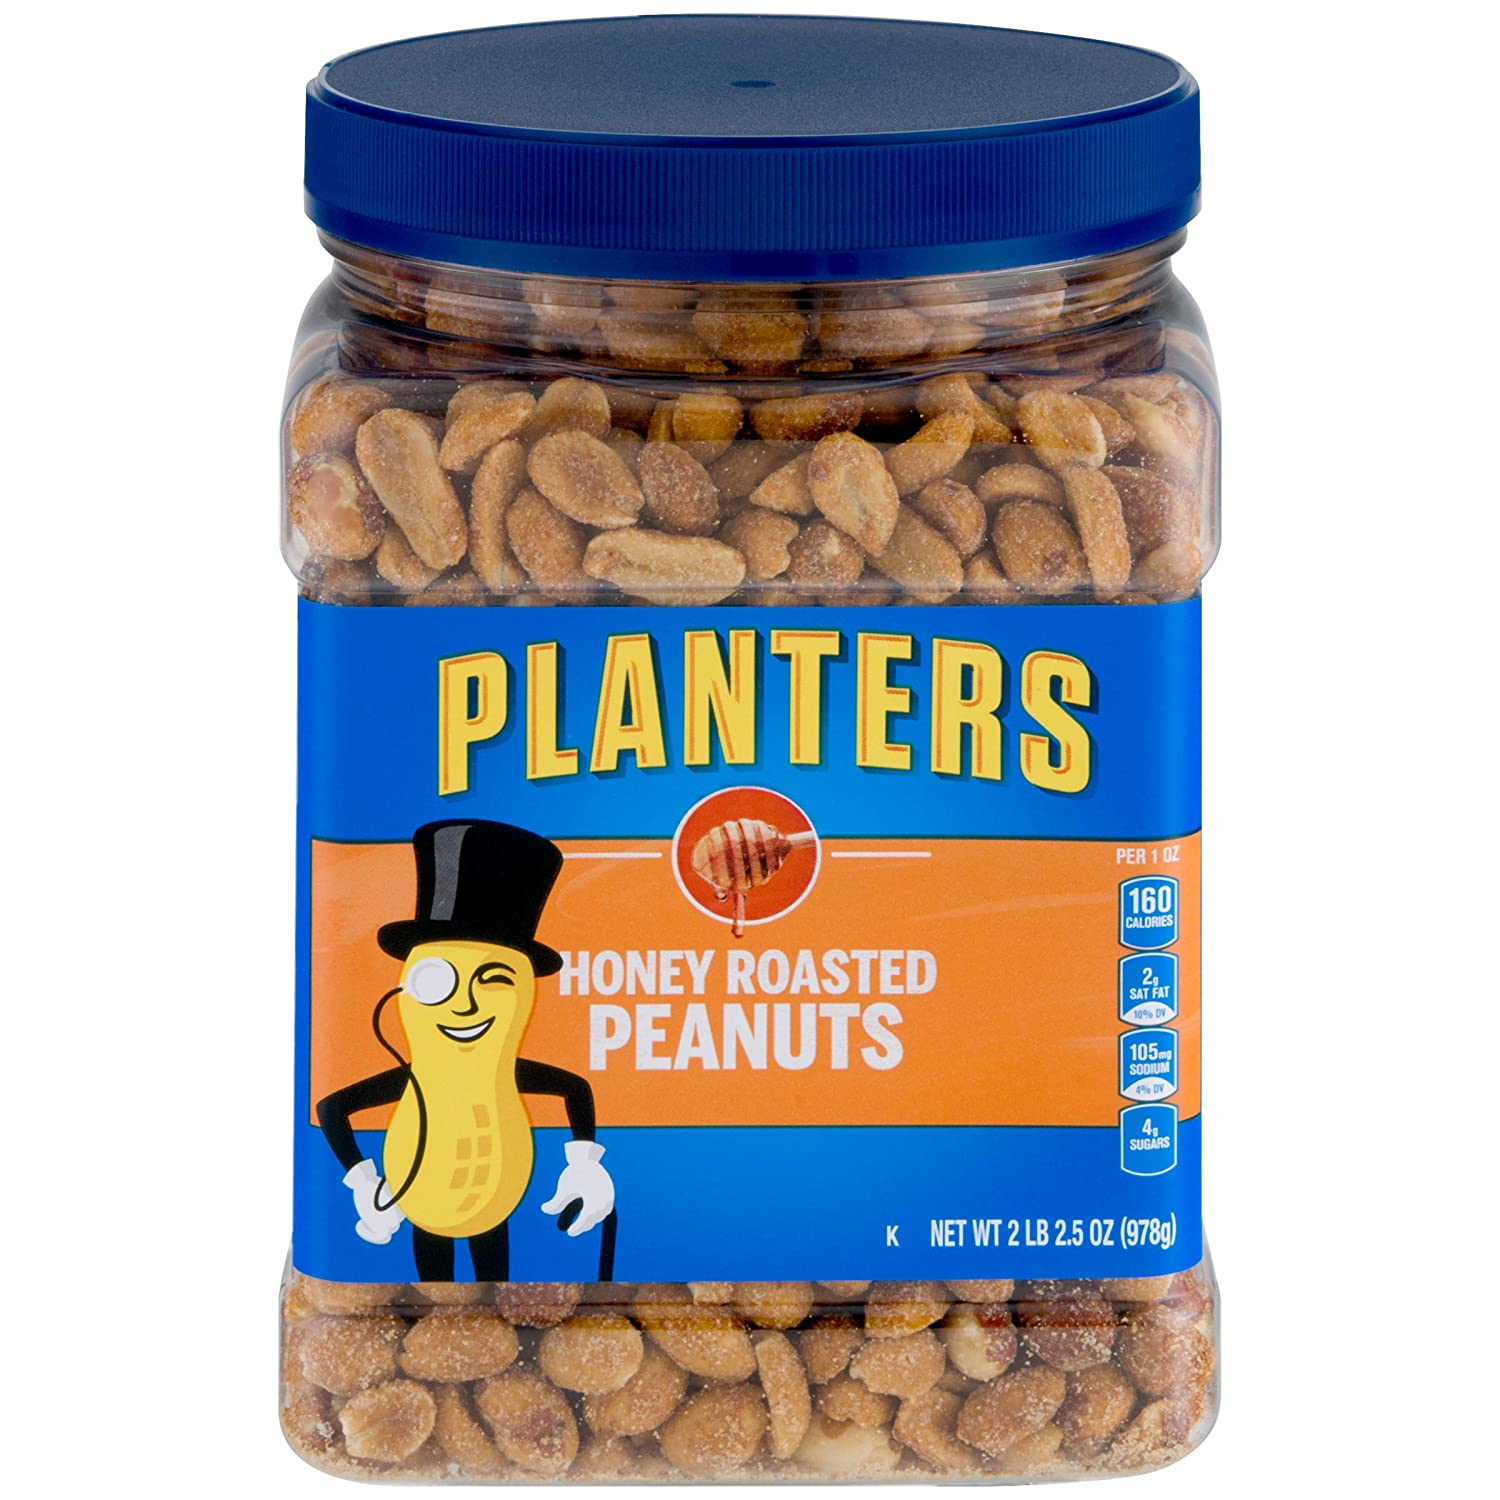 PLANTERS Honey Roasted Peanuts, 34.5 oz. Resealable Jar | Premium Quality Peanuts | Sweet and Salty Snack | Sweet Peanut Snack | Nutritious Snacks & Nuts | Wholesome Snacking | Kosher, pack of 2